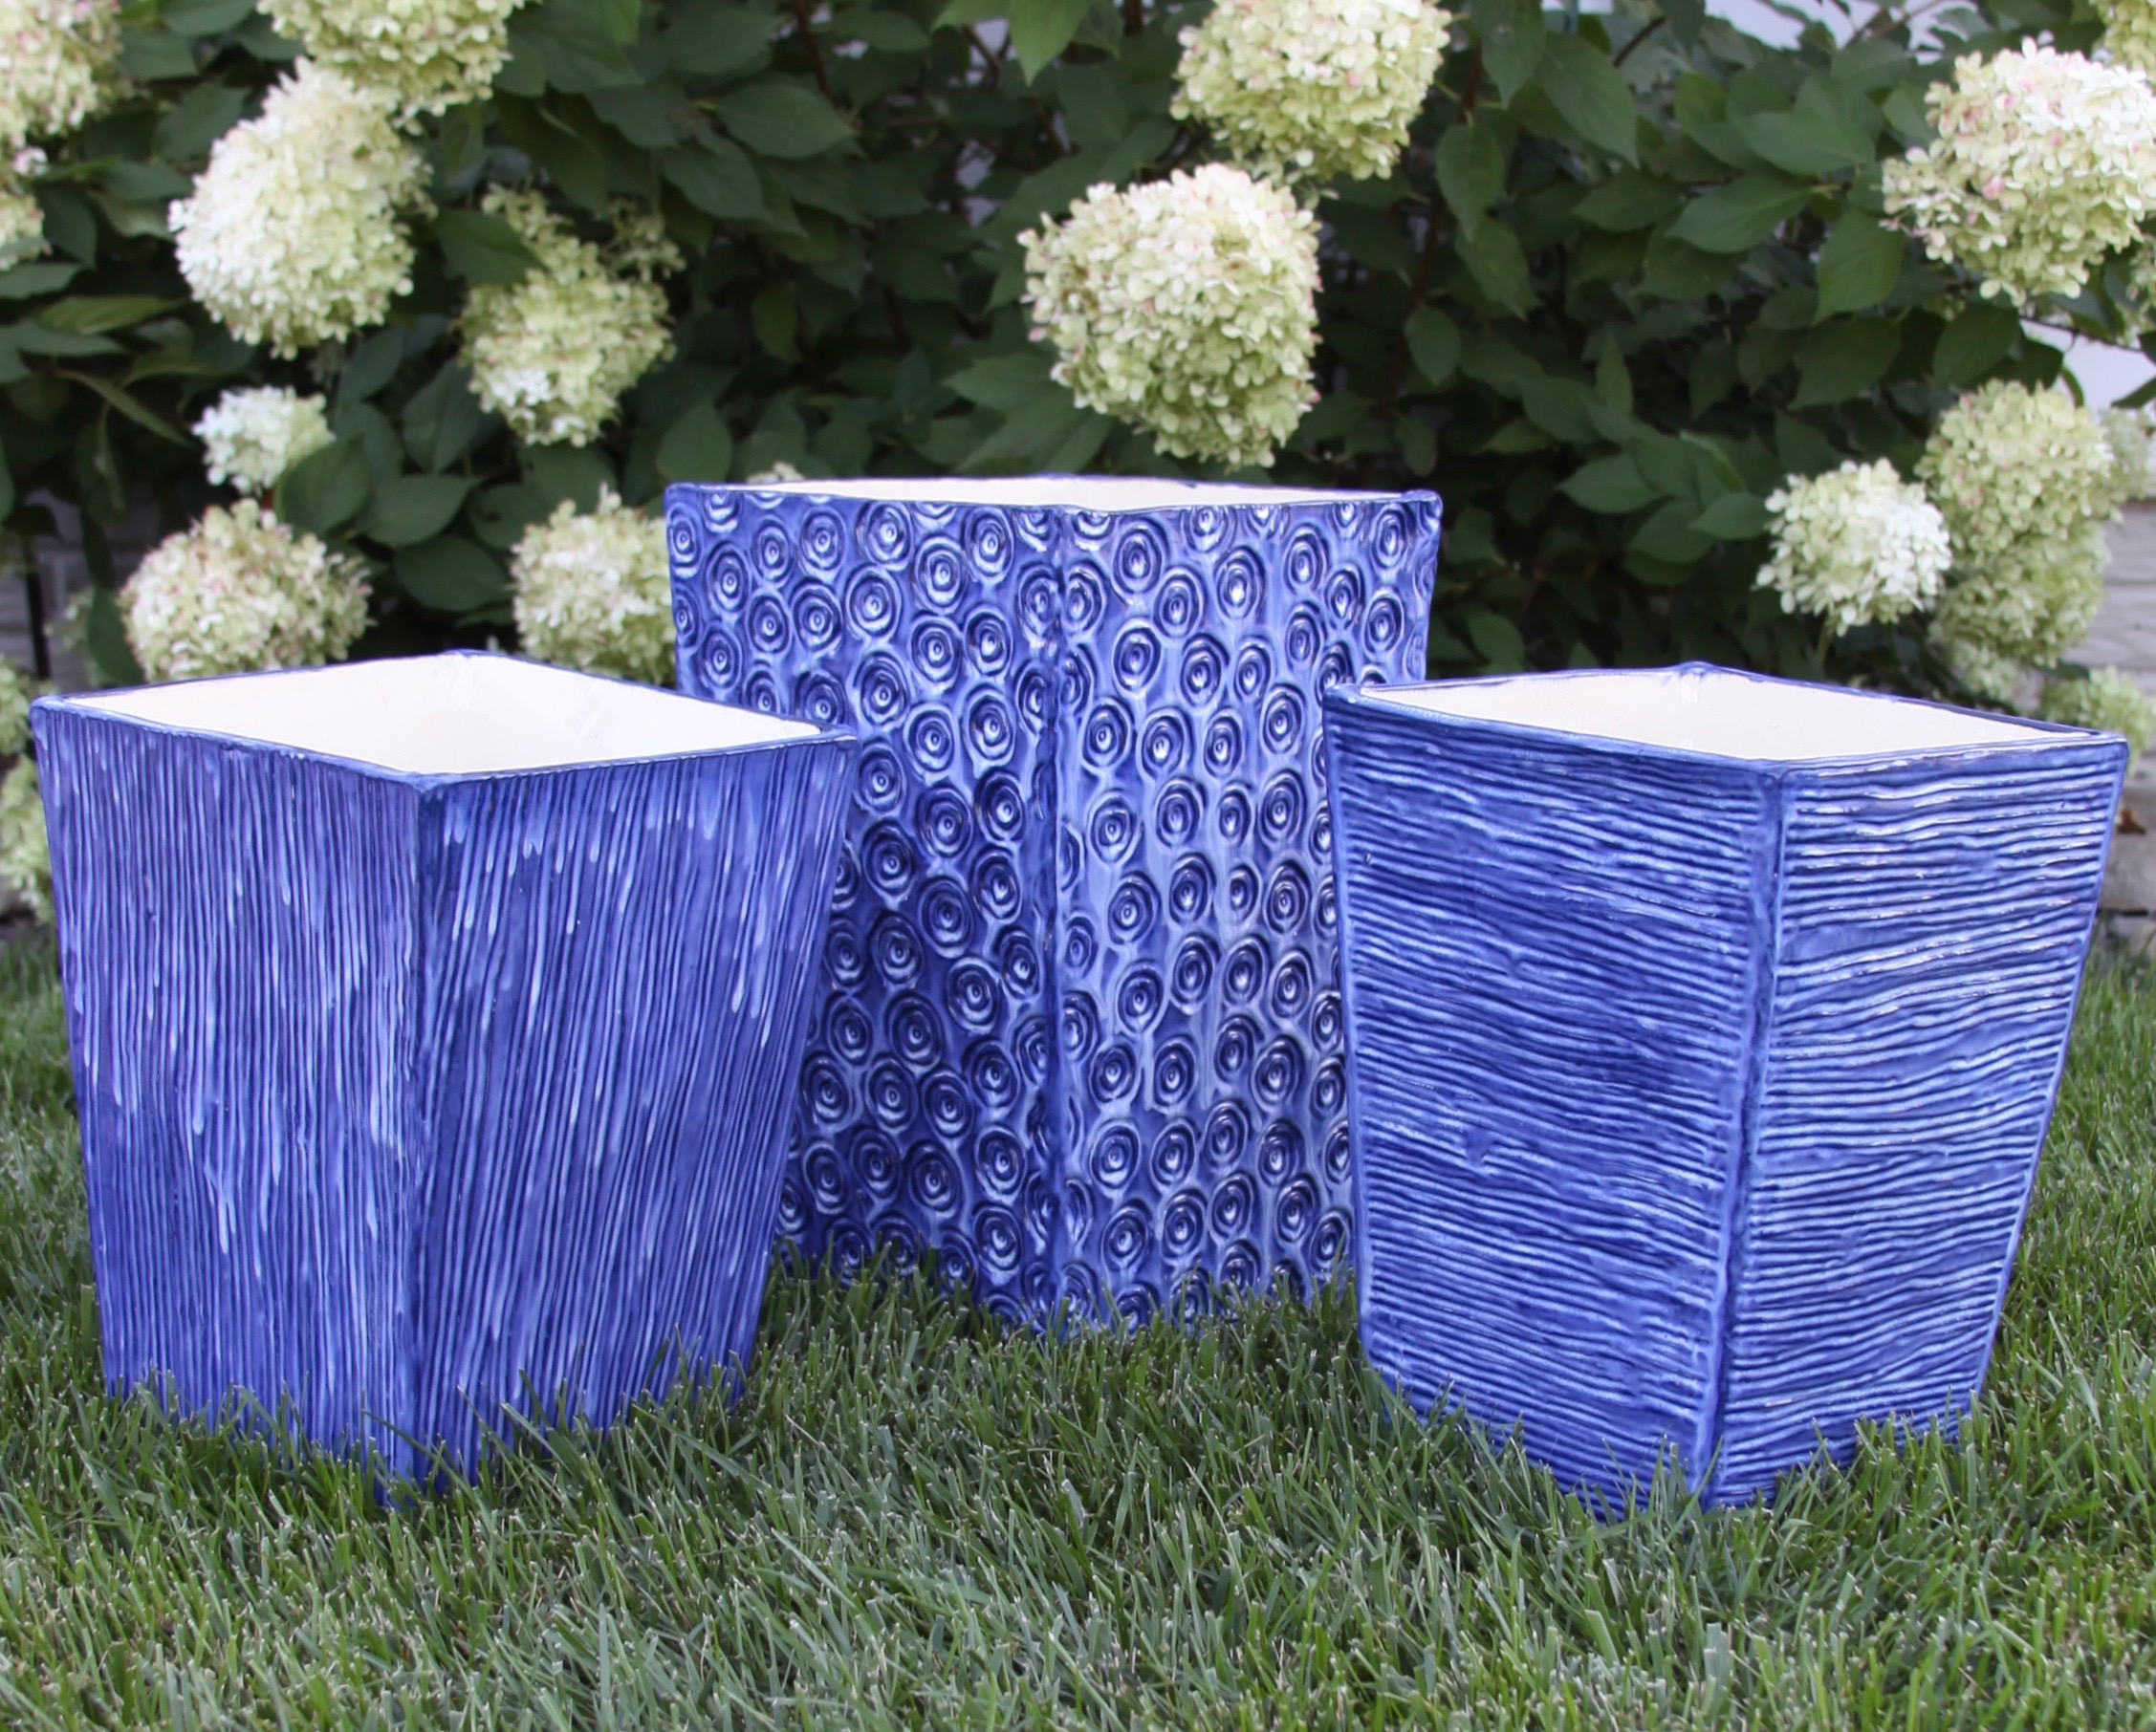 This set of planters will grace an outdoor spa in South Carolina. This custom project was fun to create. The largest one measures 15 inches tall! These three pieces took up the entire kiln when they were fired.